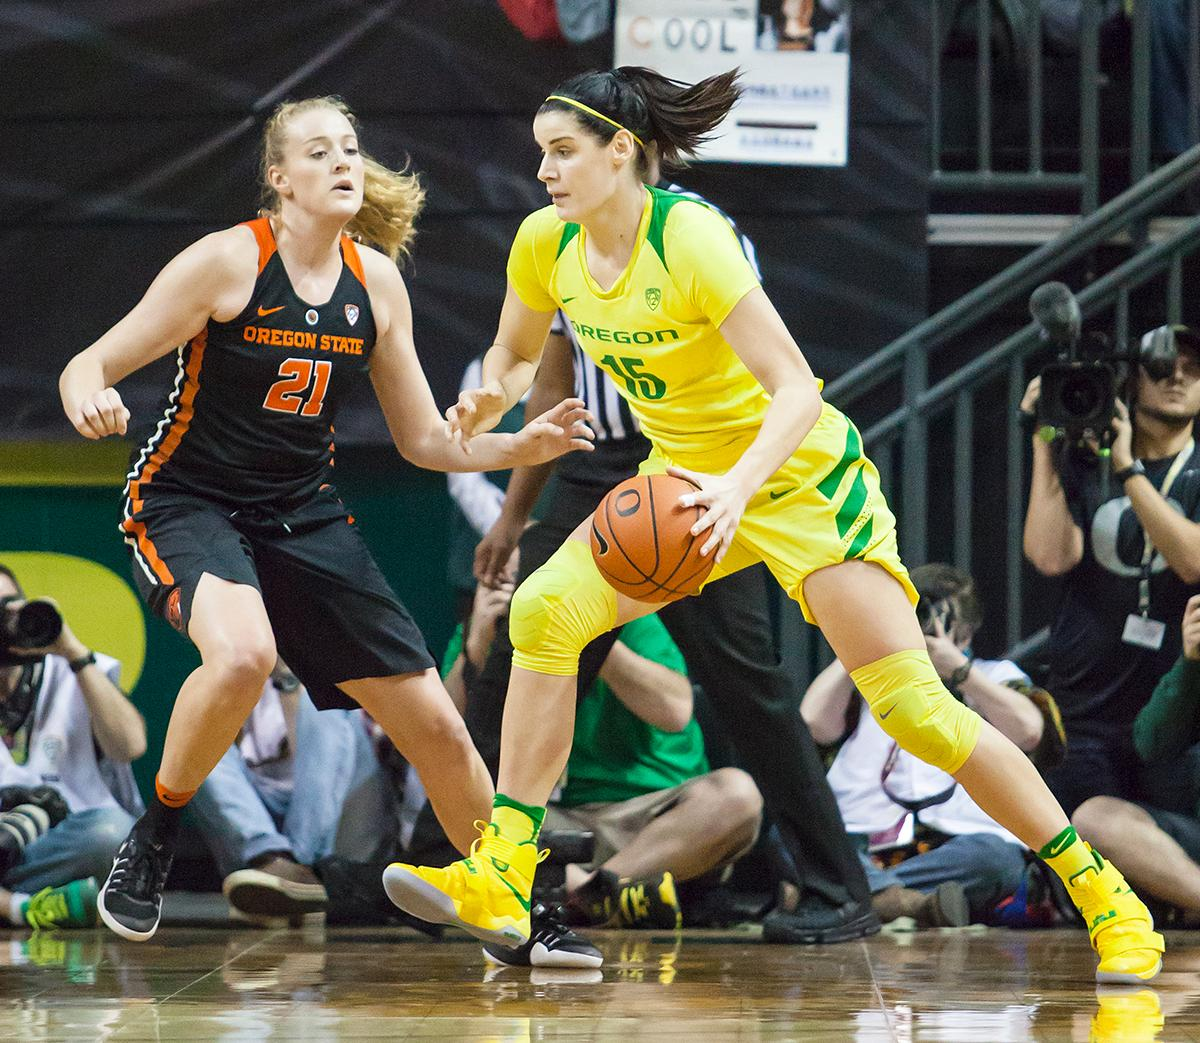 Oregon forward Jacinta Vandenberg (#15) attempts to break free of Oregon State center Marie Gulich (#21). The Oregon Ducks lost 40 to 43 against the Oregon State Beavers after a tightly matched 4th quarter. Photo by Ben Lonergan, Oregon News Lab